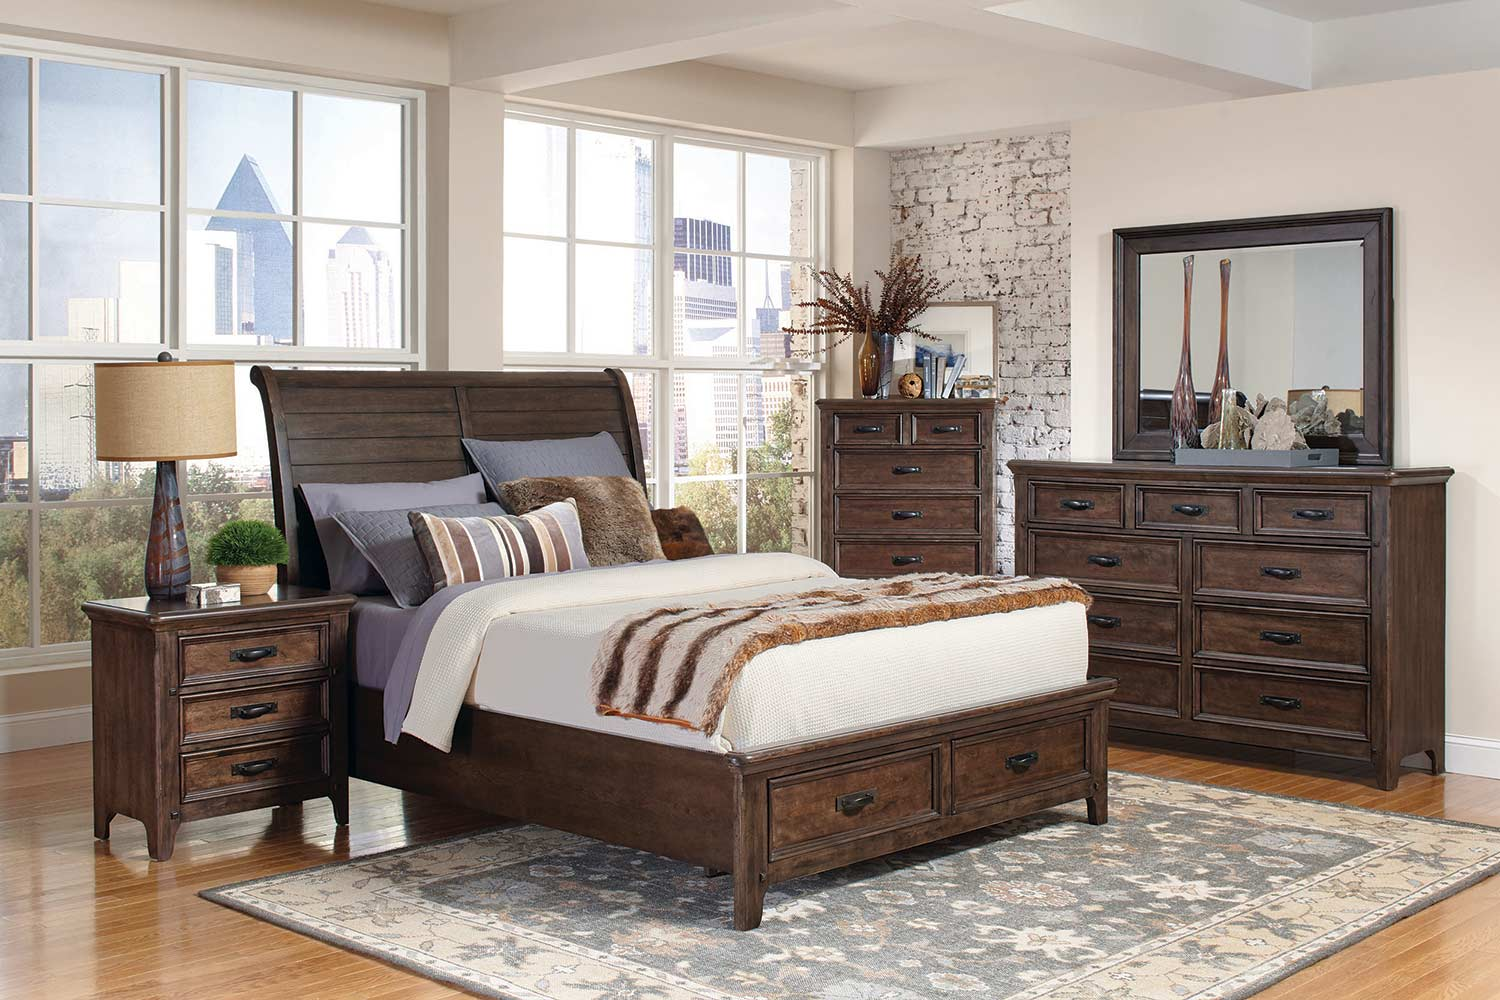 Coaster Ives Bedroom Collection